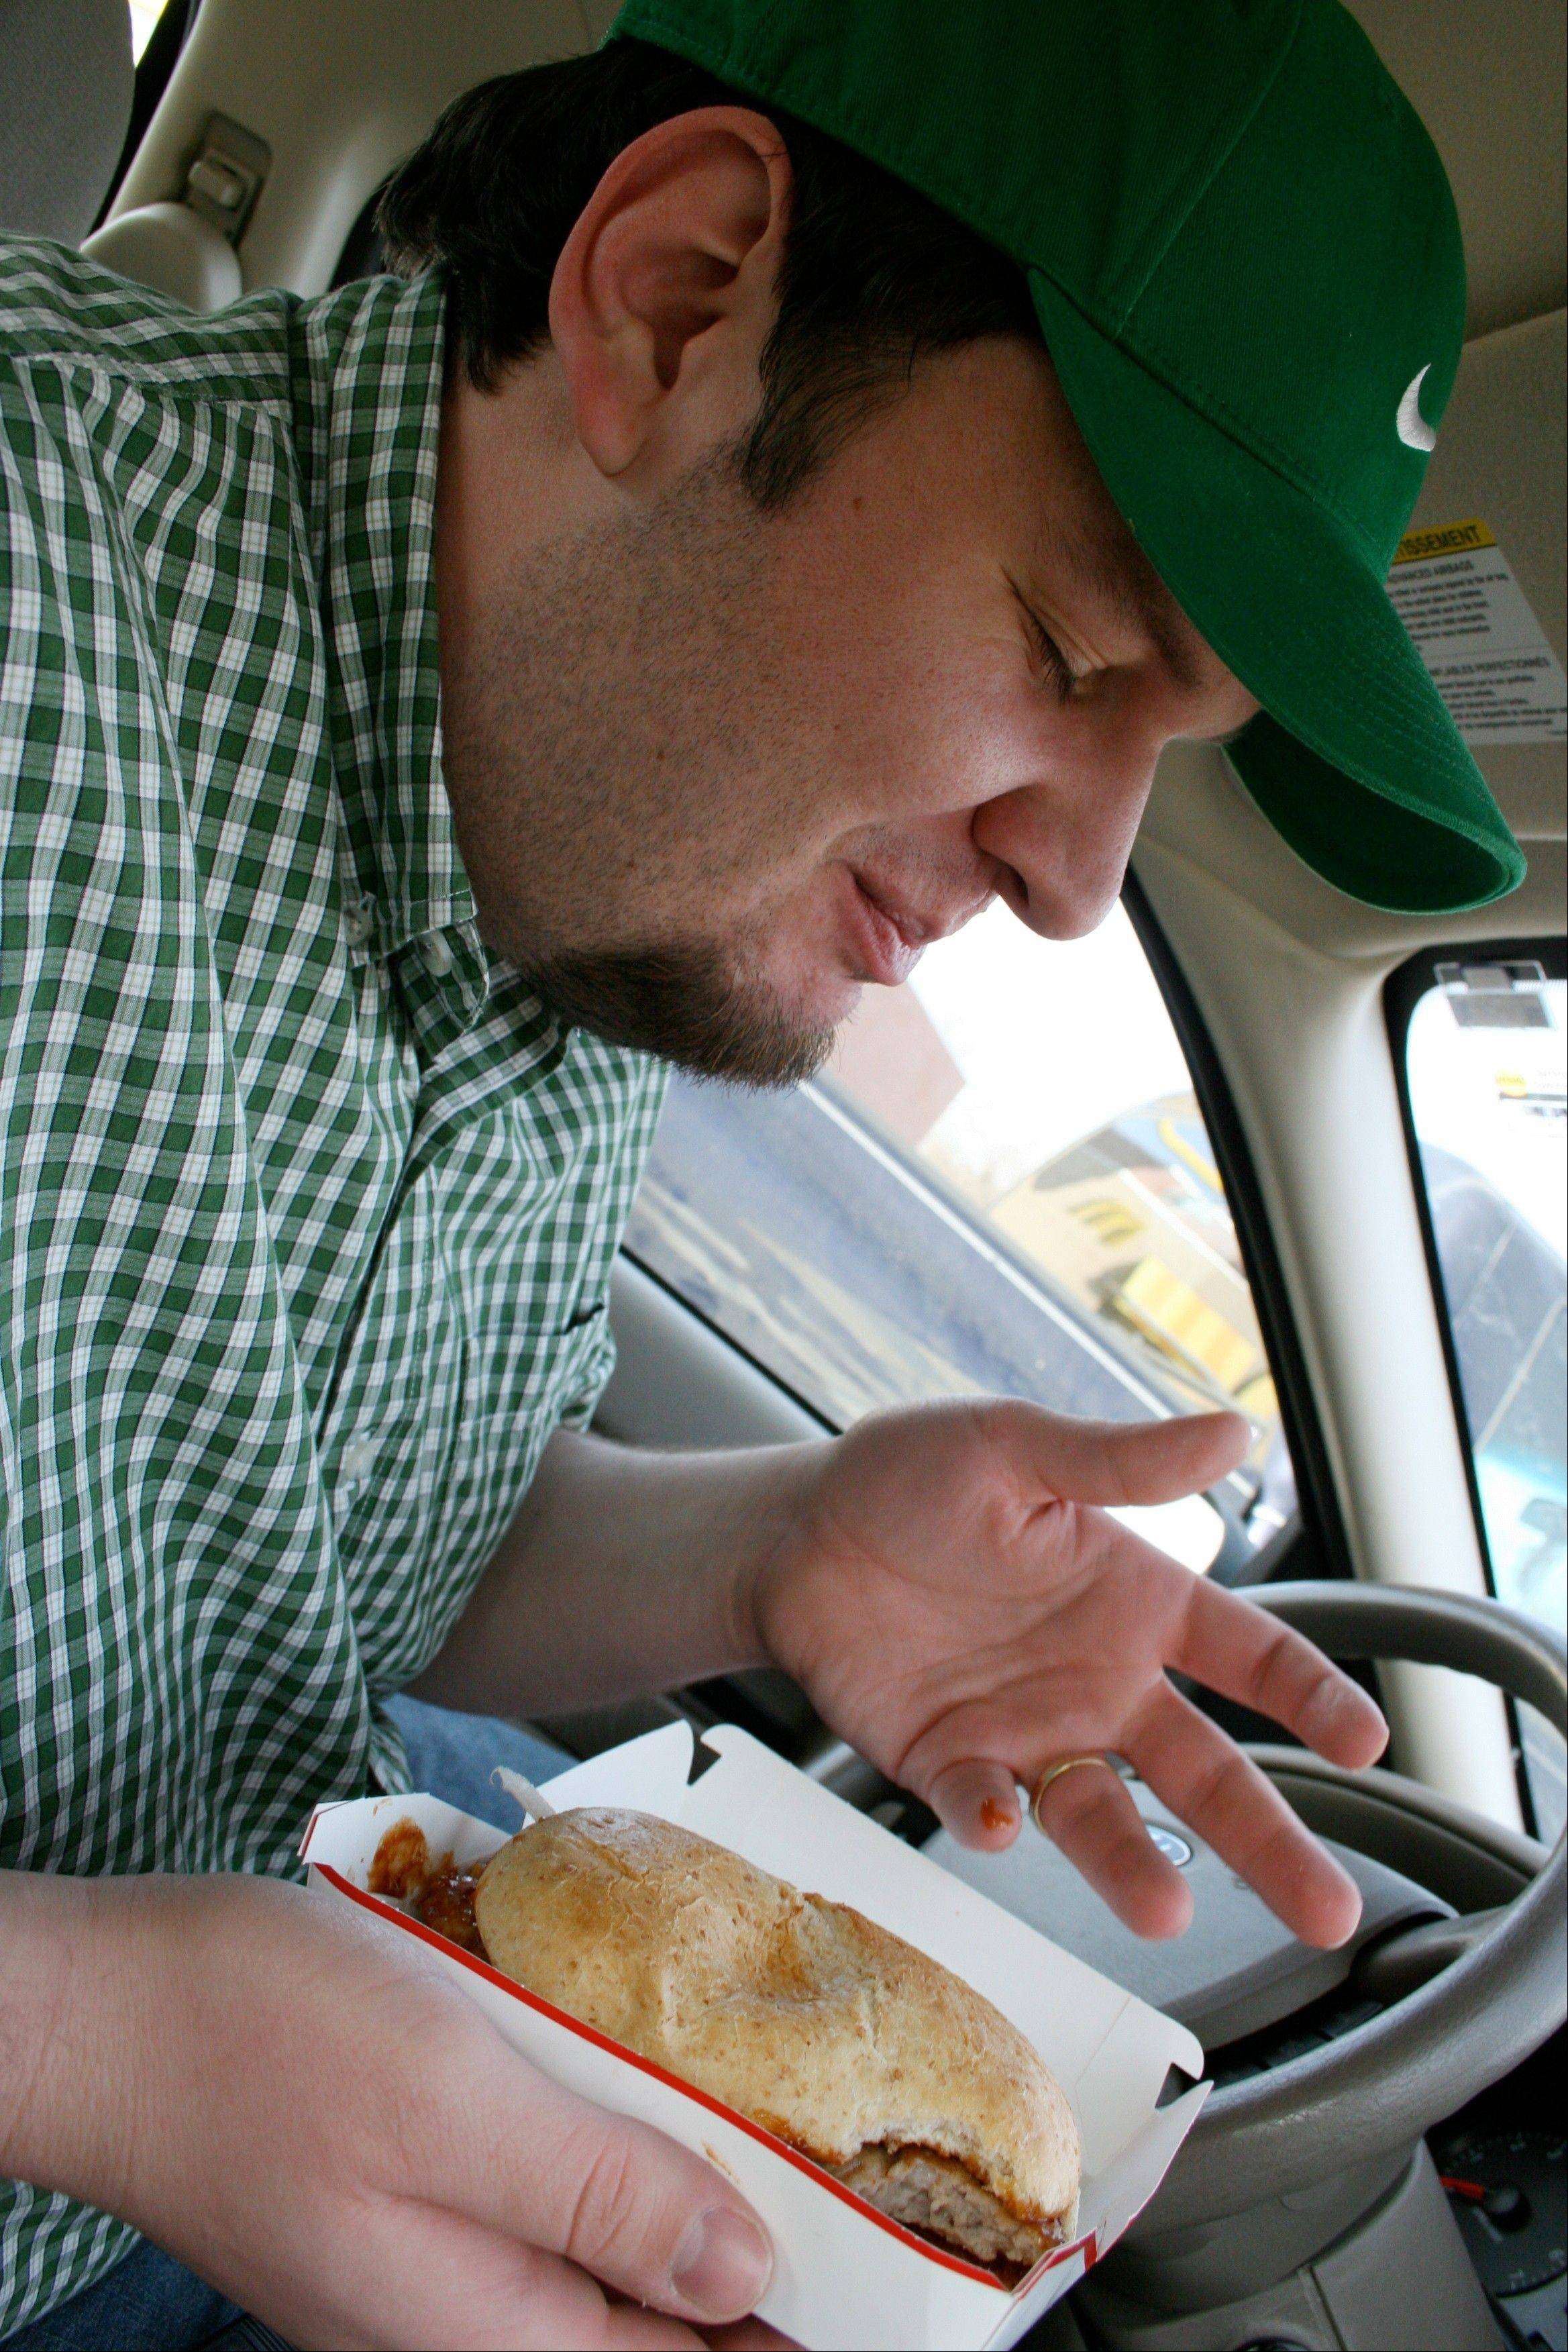 In this Nov. 2007 photo, Alan Klein, a meteorologist in the Minneapolis area, who created the McRib Locator website to help other McRib enthusiasts track where McDonald's is offering the elusive sandwich, enjoys a McRib.